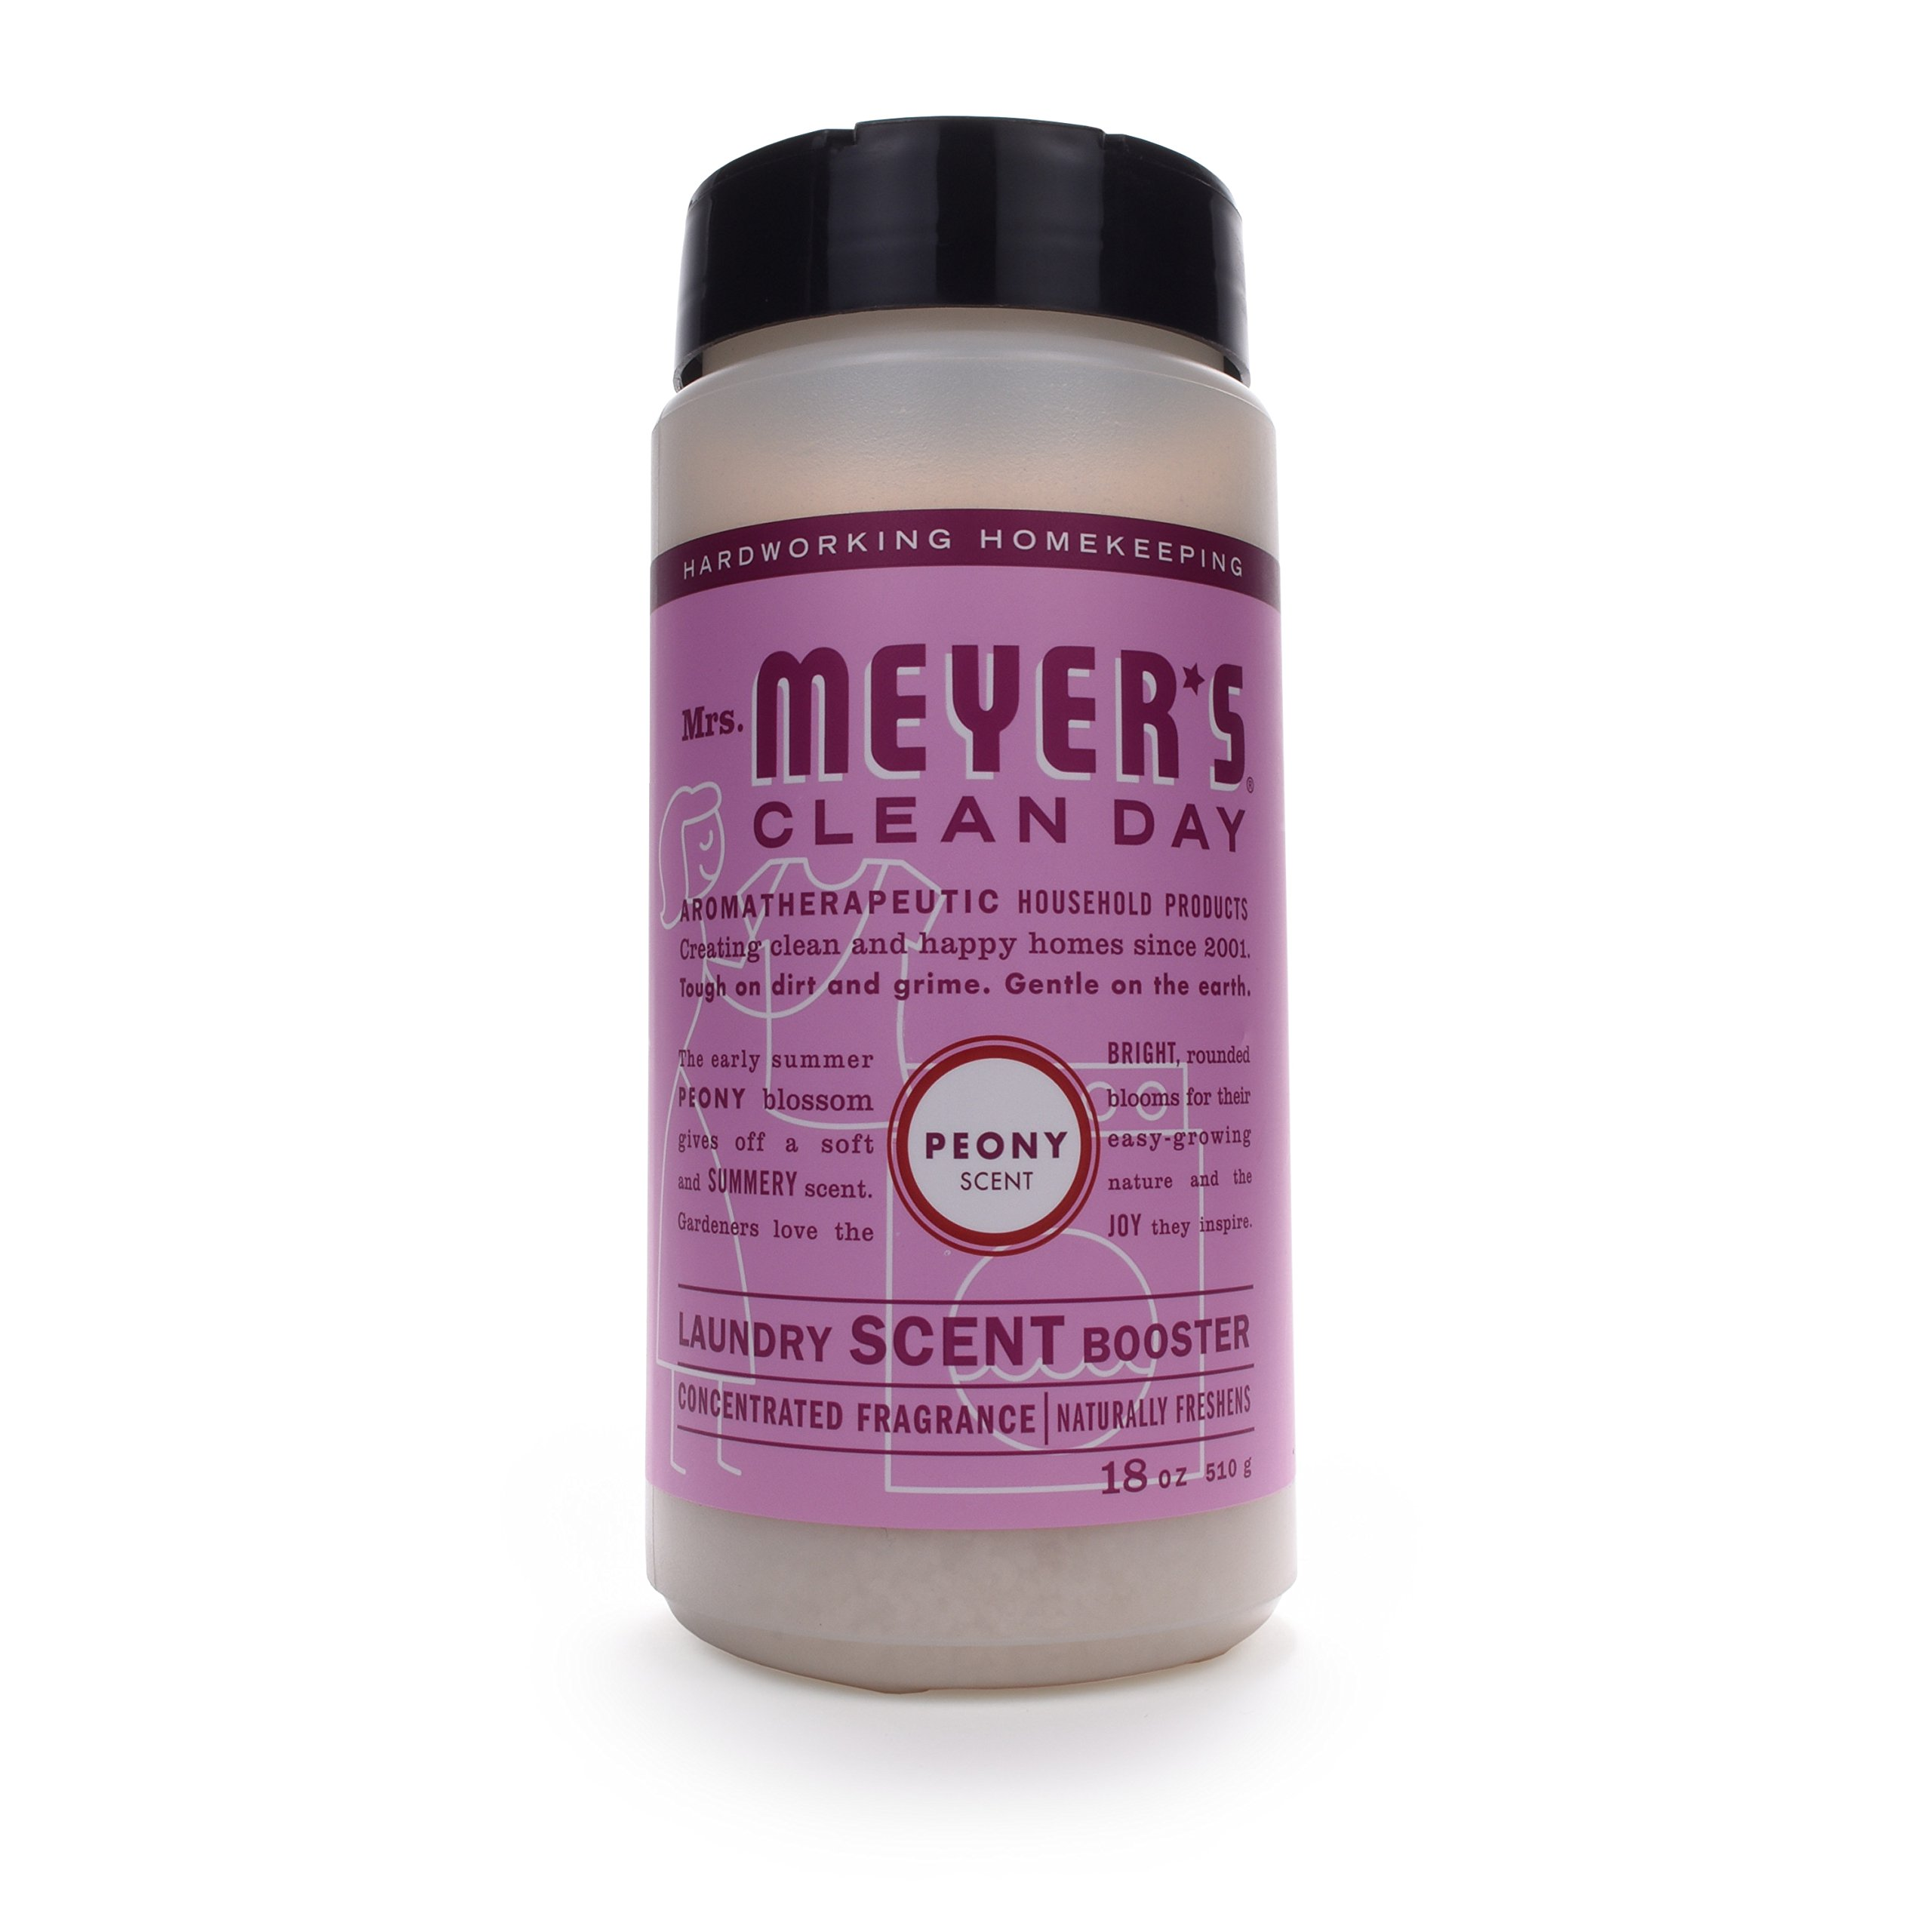 MRS MEYERS Clean Day Laundry Scent Booster, Peony, 18.0 Ounce